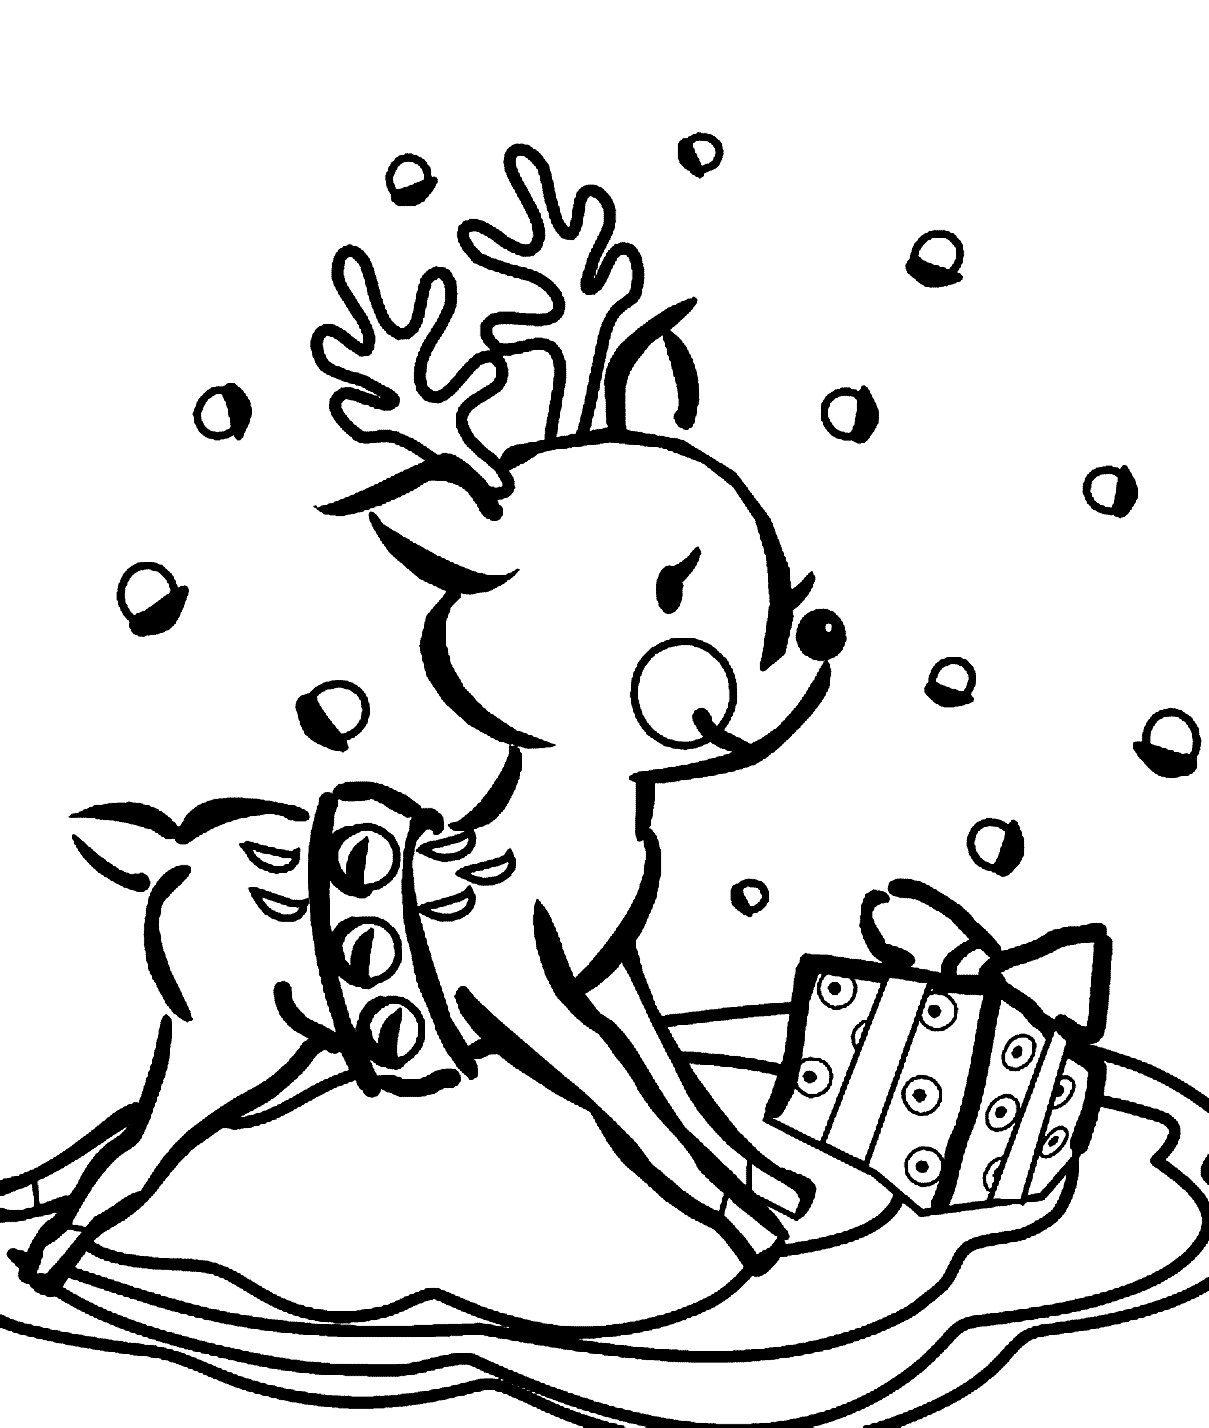 Printable Reindeer Coloring Pages | Coloring Me